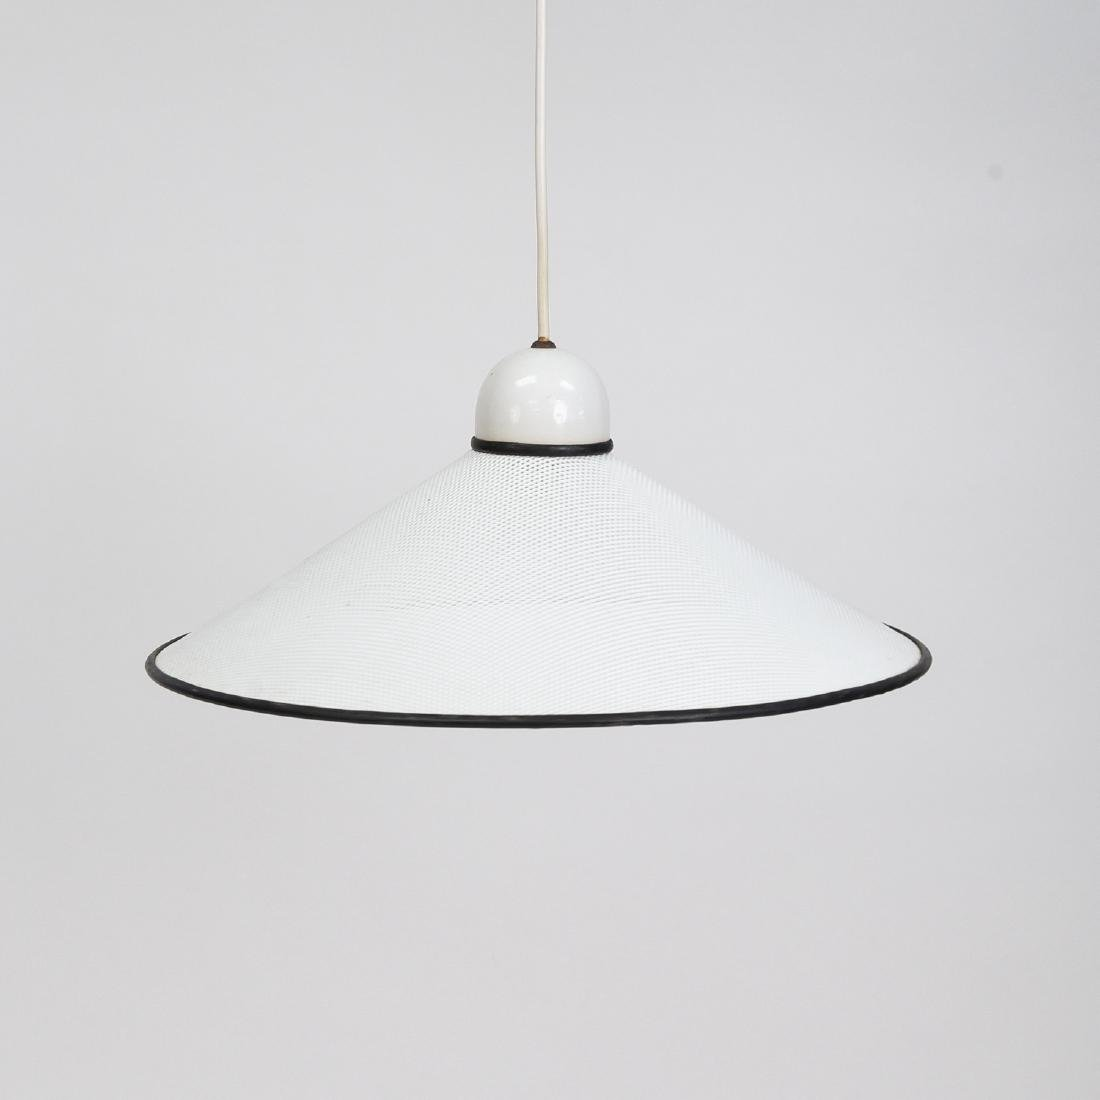 PERFORATED METAL HANGING PENDANT LAMP